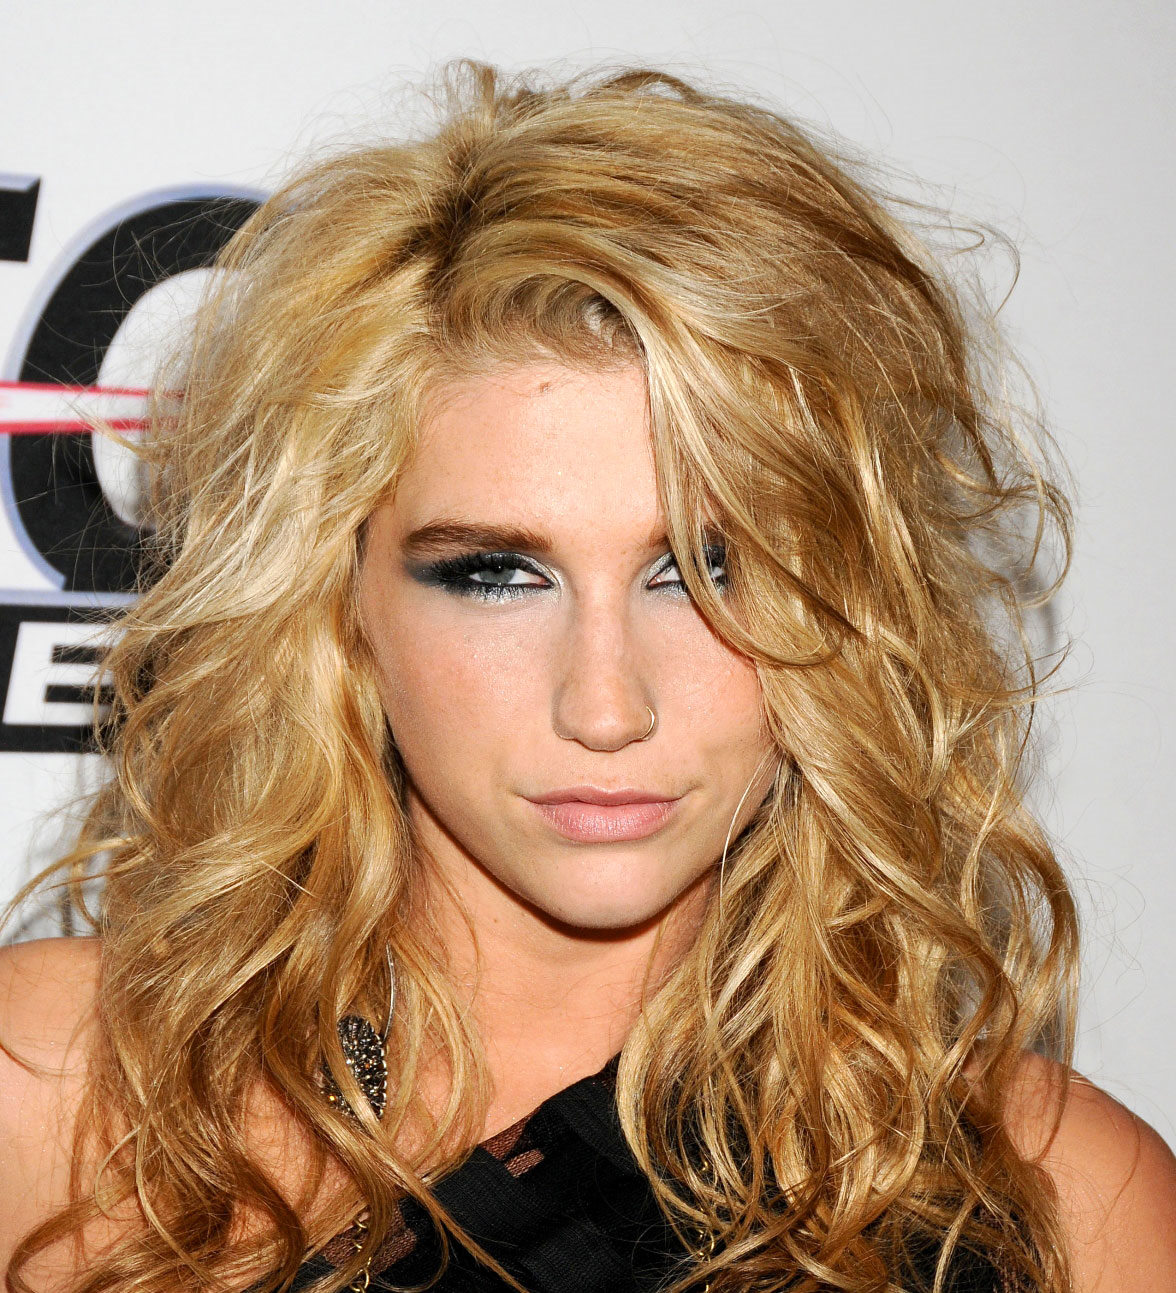 Kesha Rose Sebert HD Wallpapers High Definition iPhone HD 1176x1293